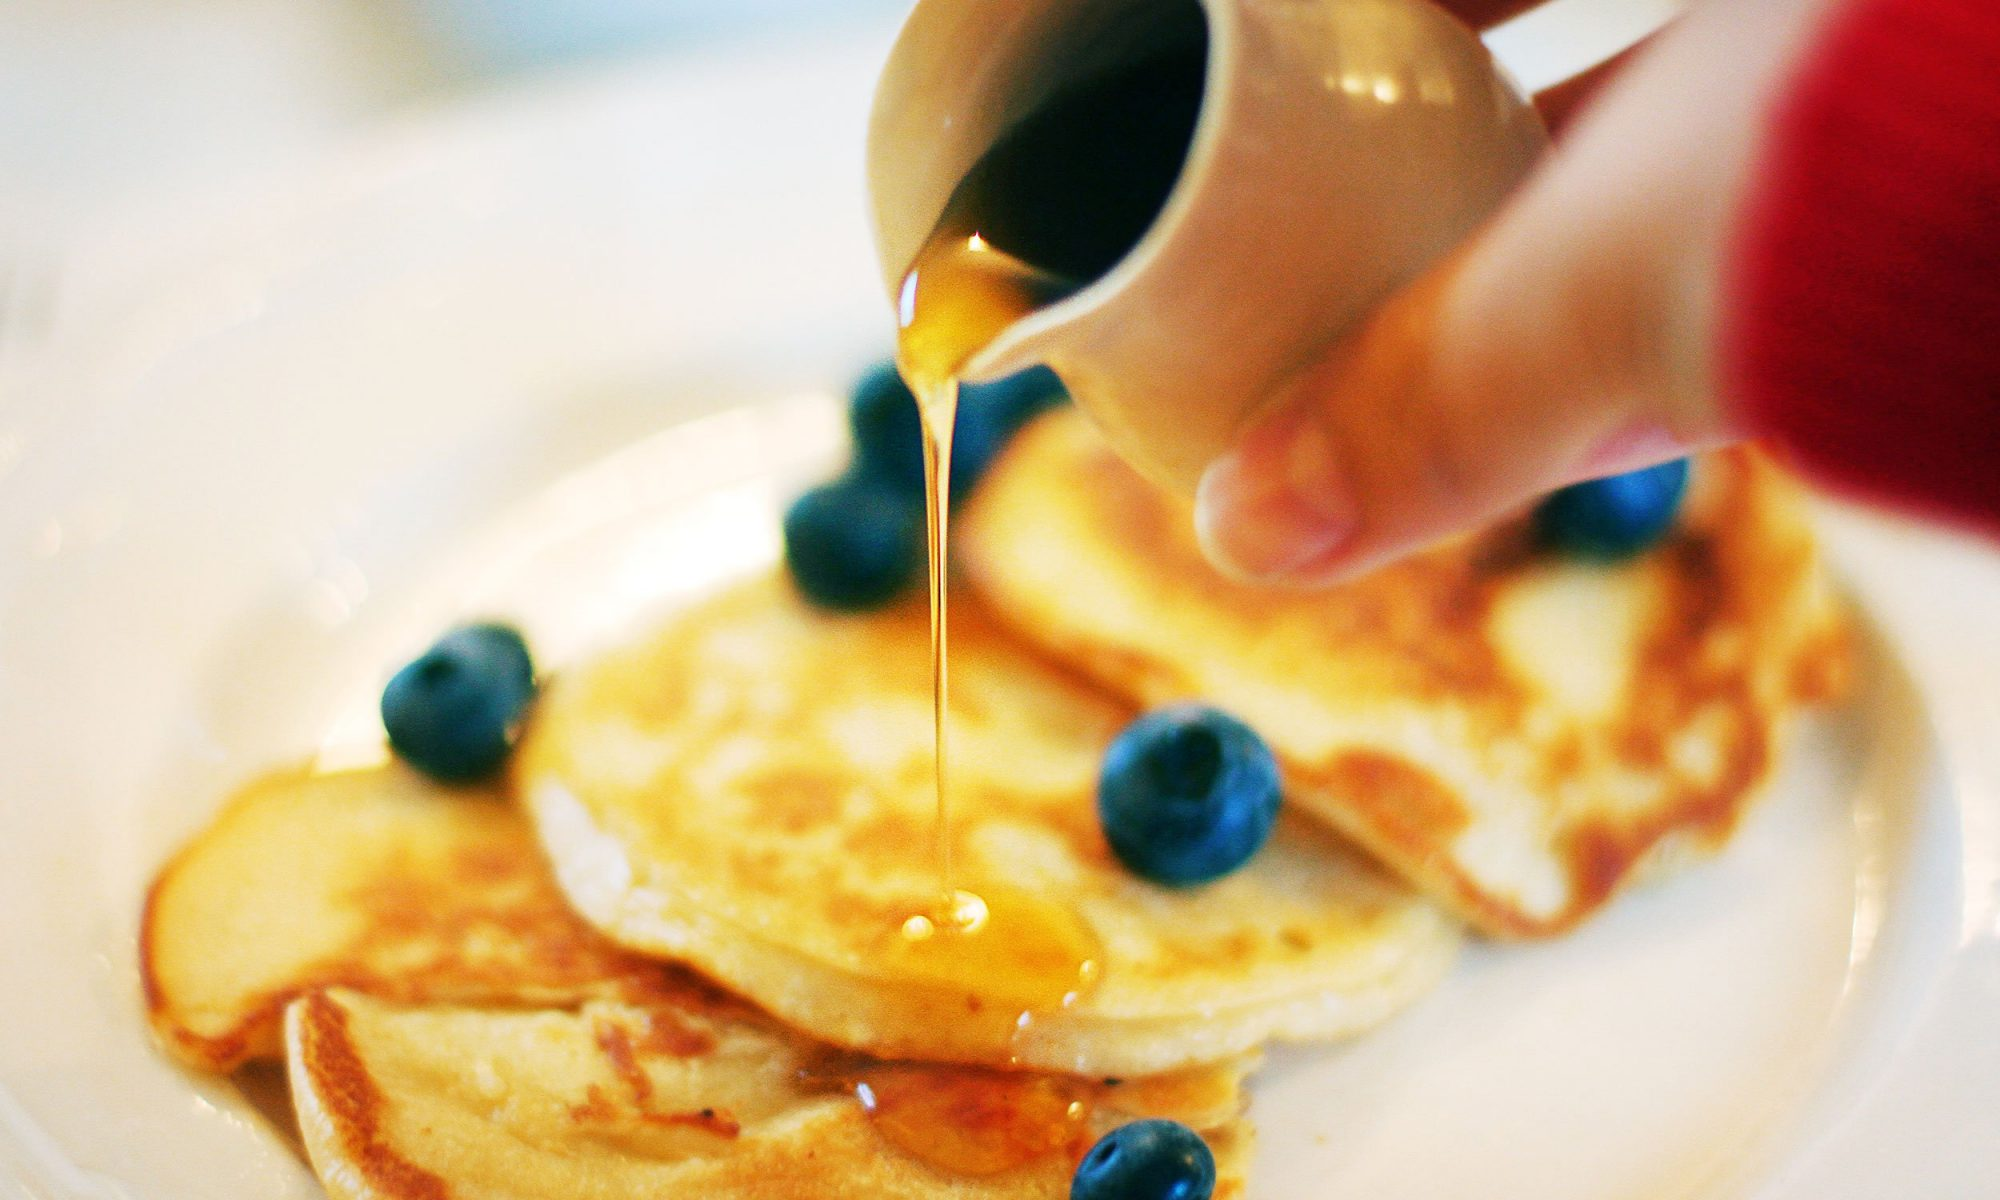 Does Syrup Ever Go Bad?